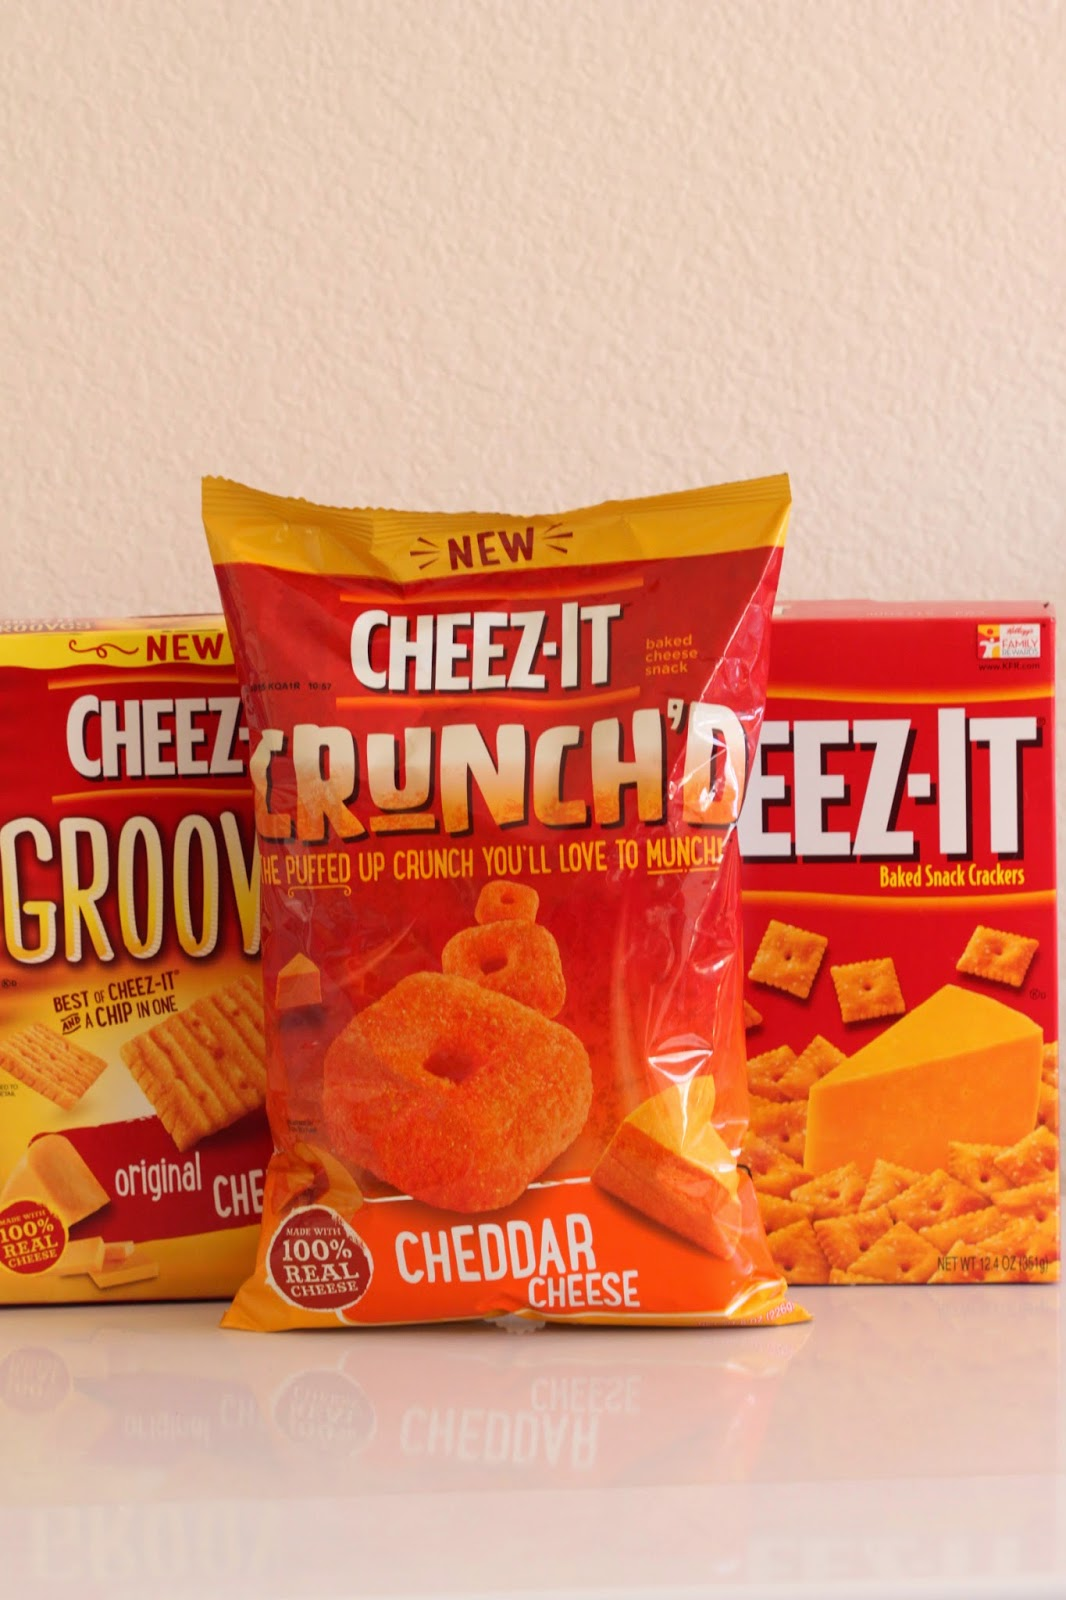 Cheez-It Crunch'd and Cheez-It Grooves